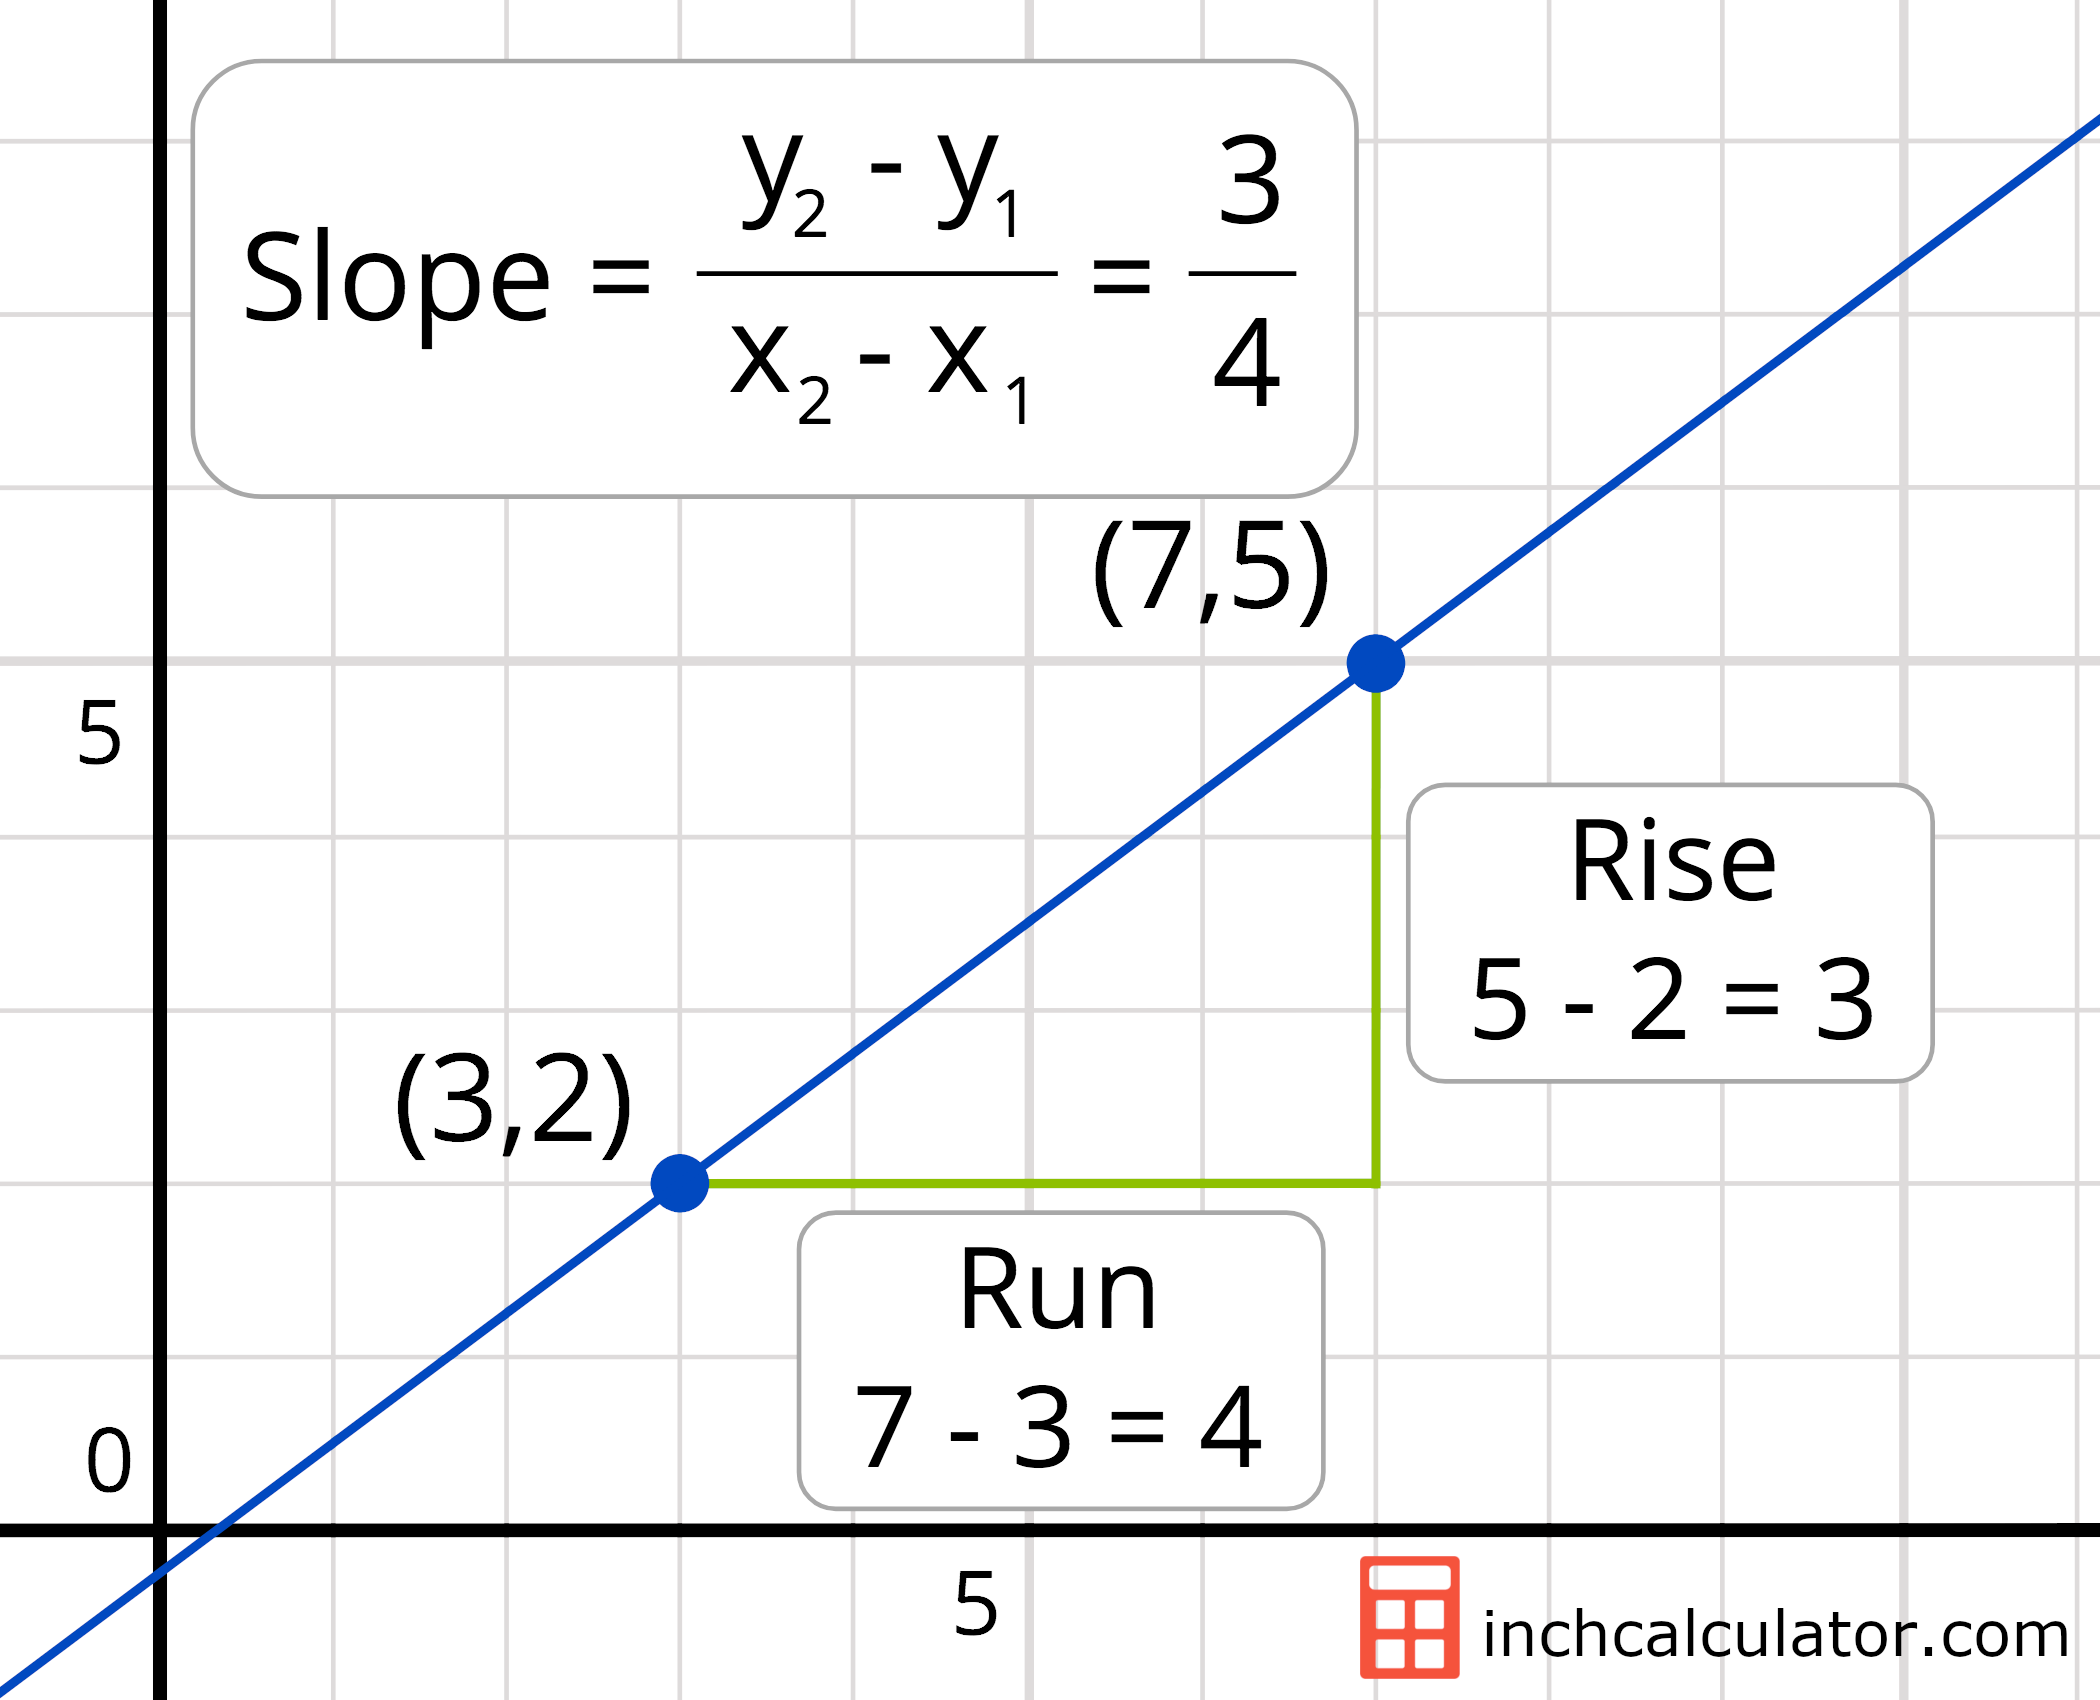 graph demonstrating how to solve the slope of a line passing through coordinates (3,2) and (7,5)